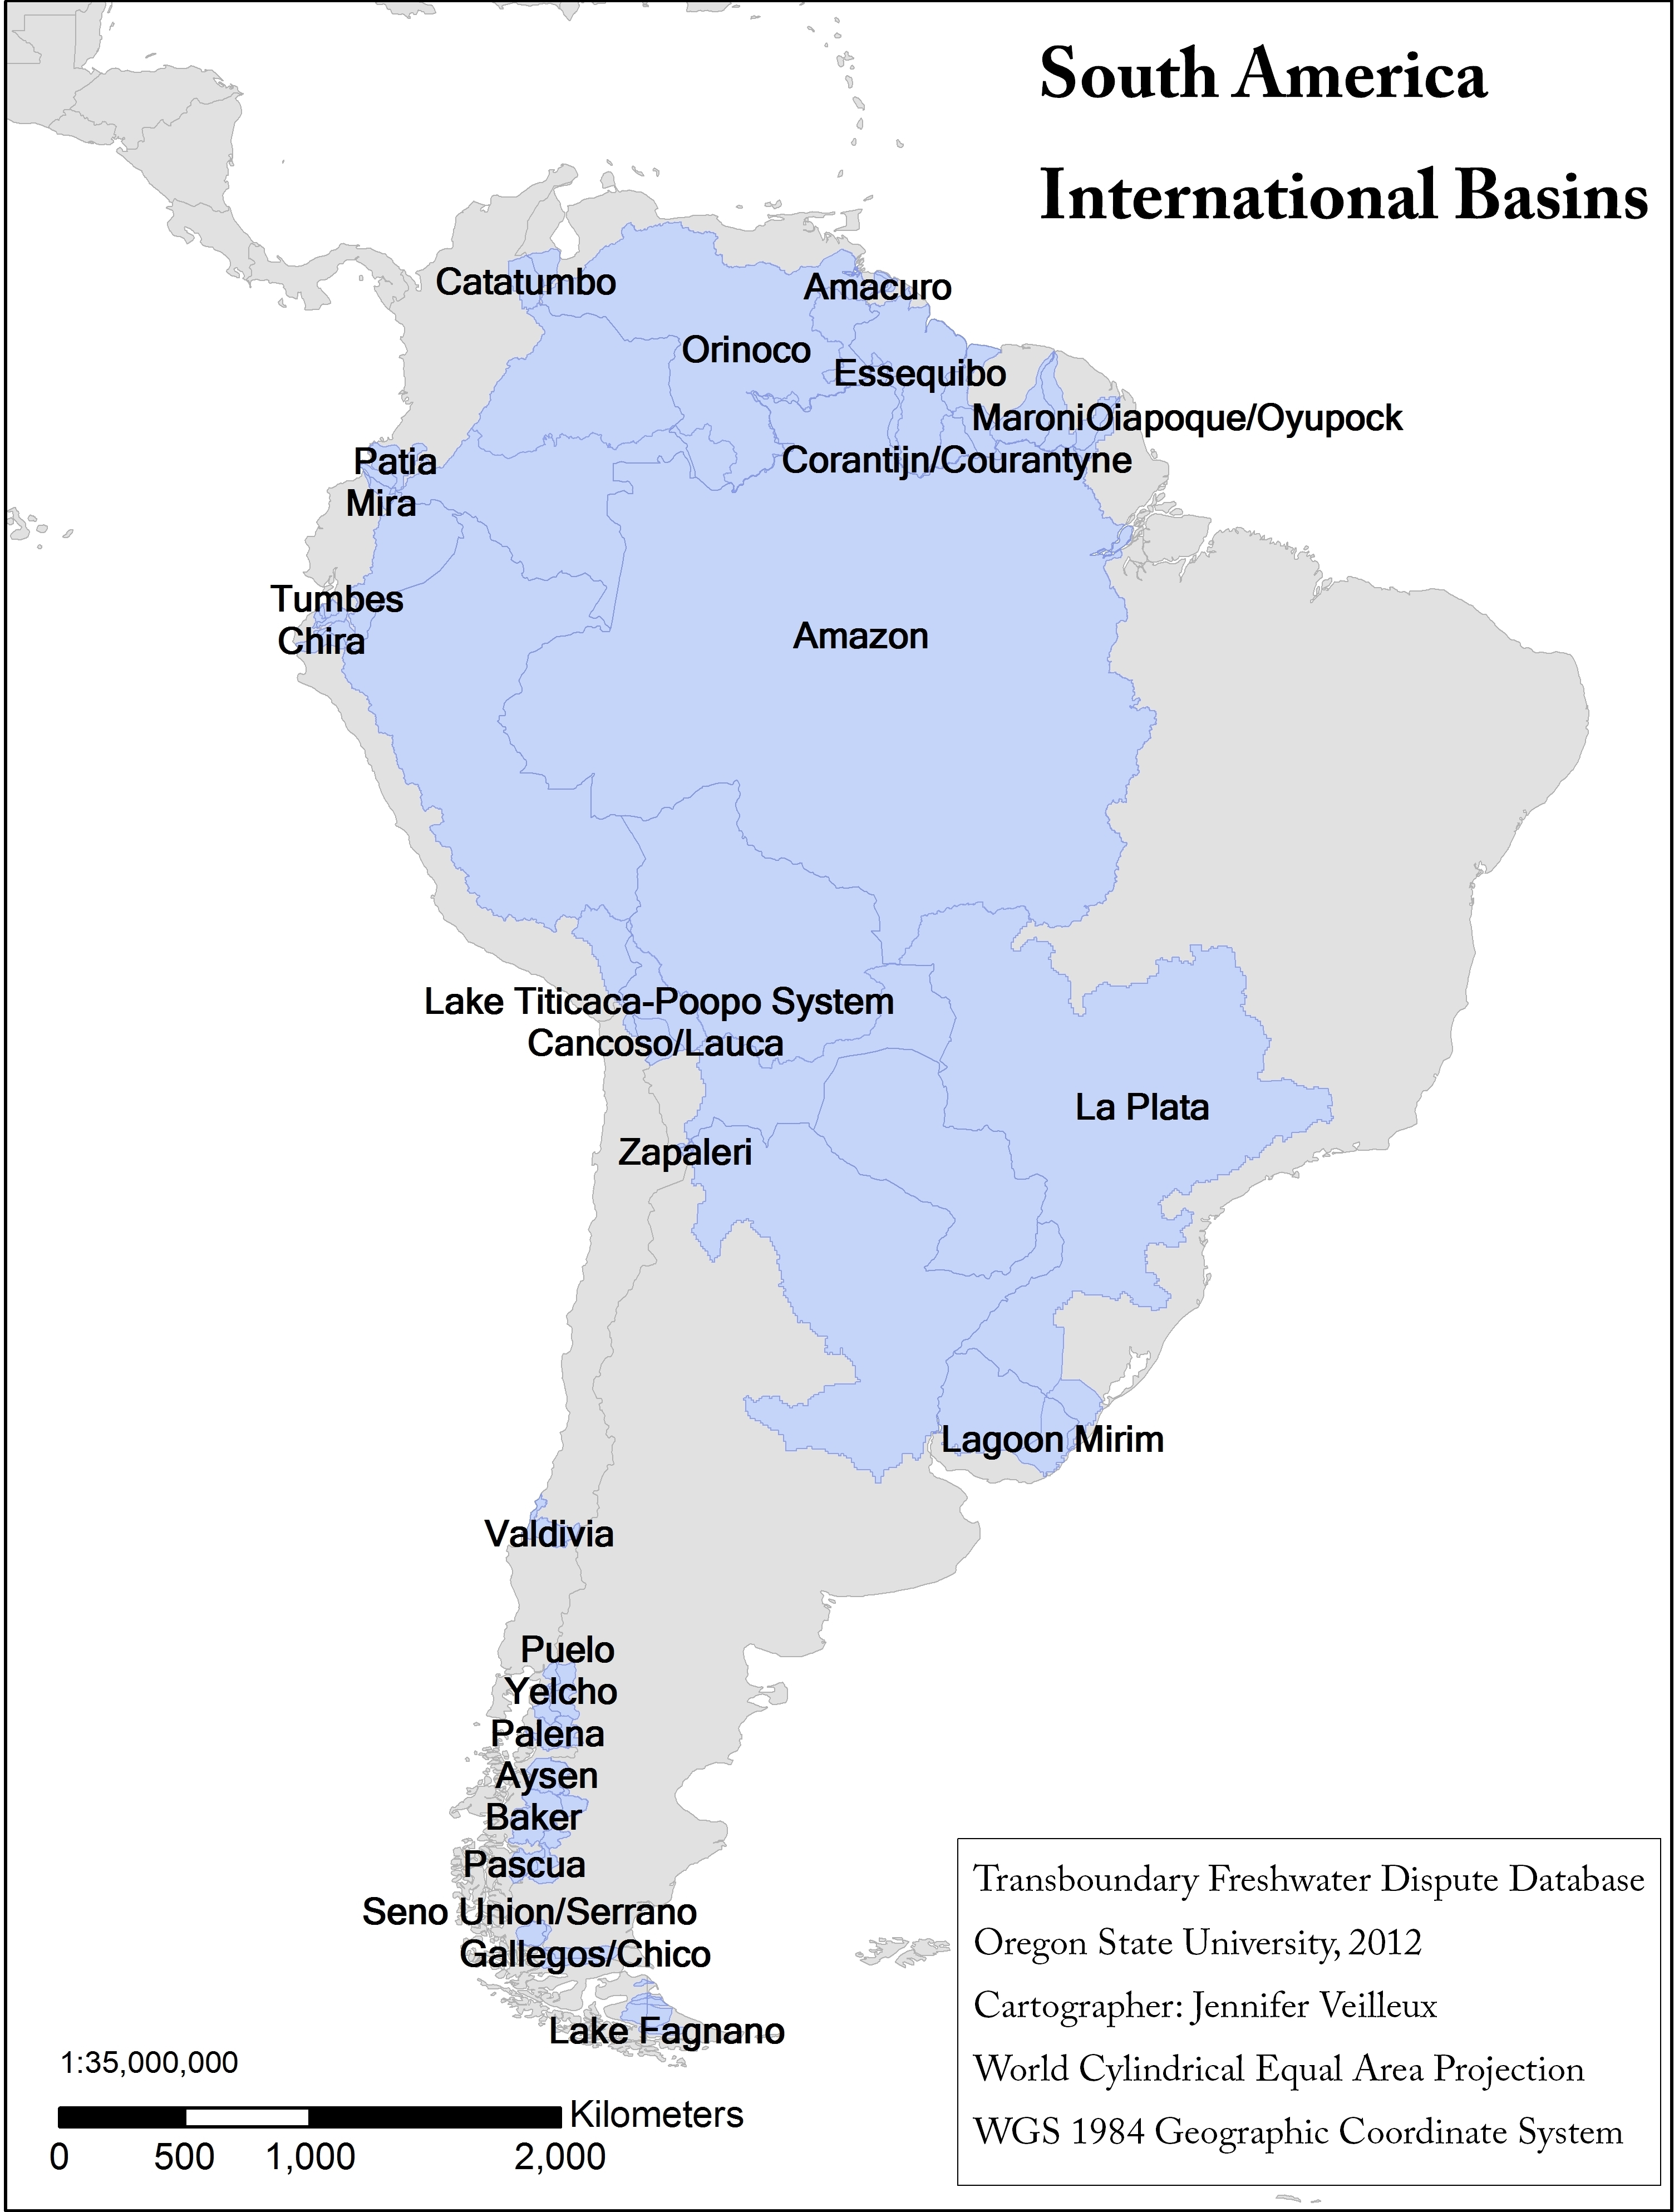 International water law project blog latin america archives international basins of south america publicscrutiny Images